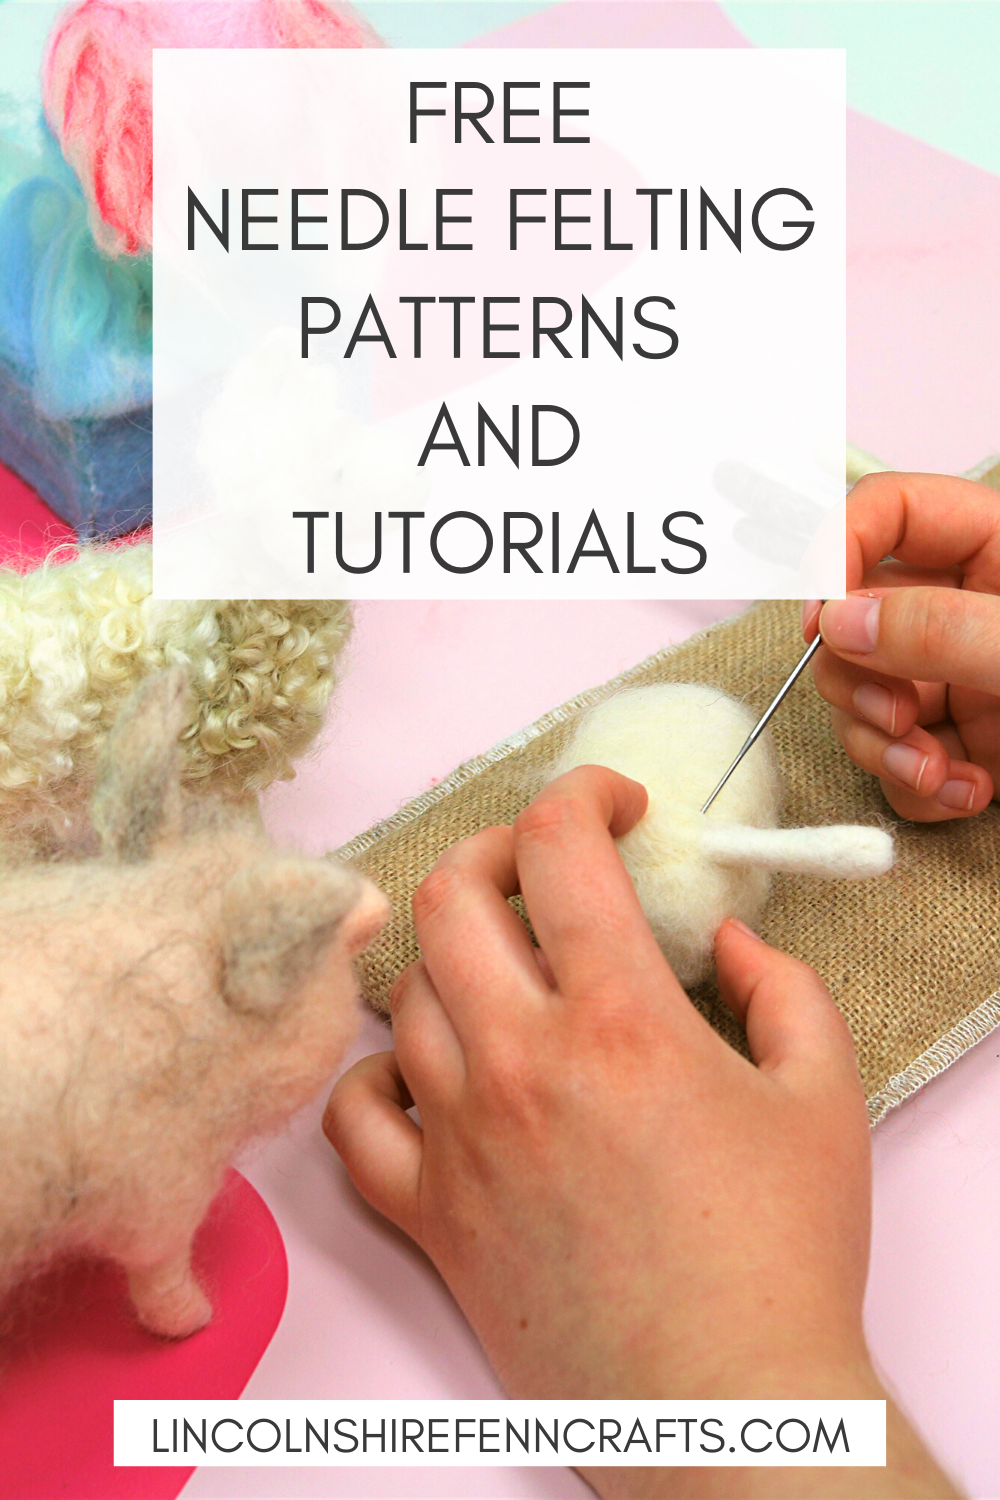 Needle felting kits and ultimate guide to needle felting for beginners